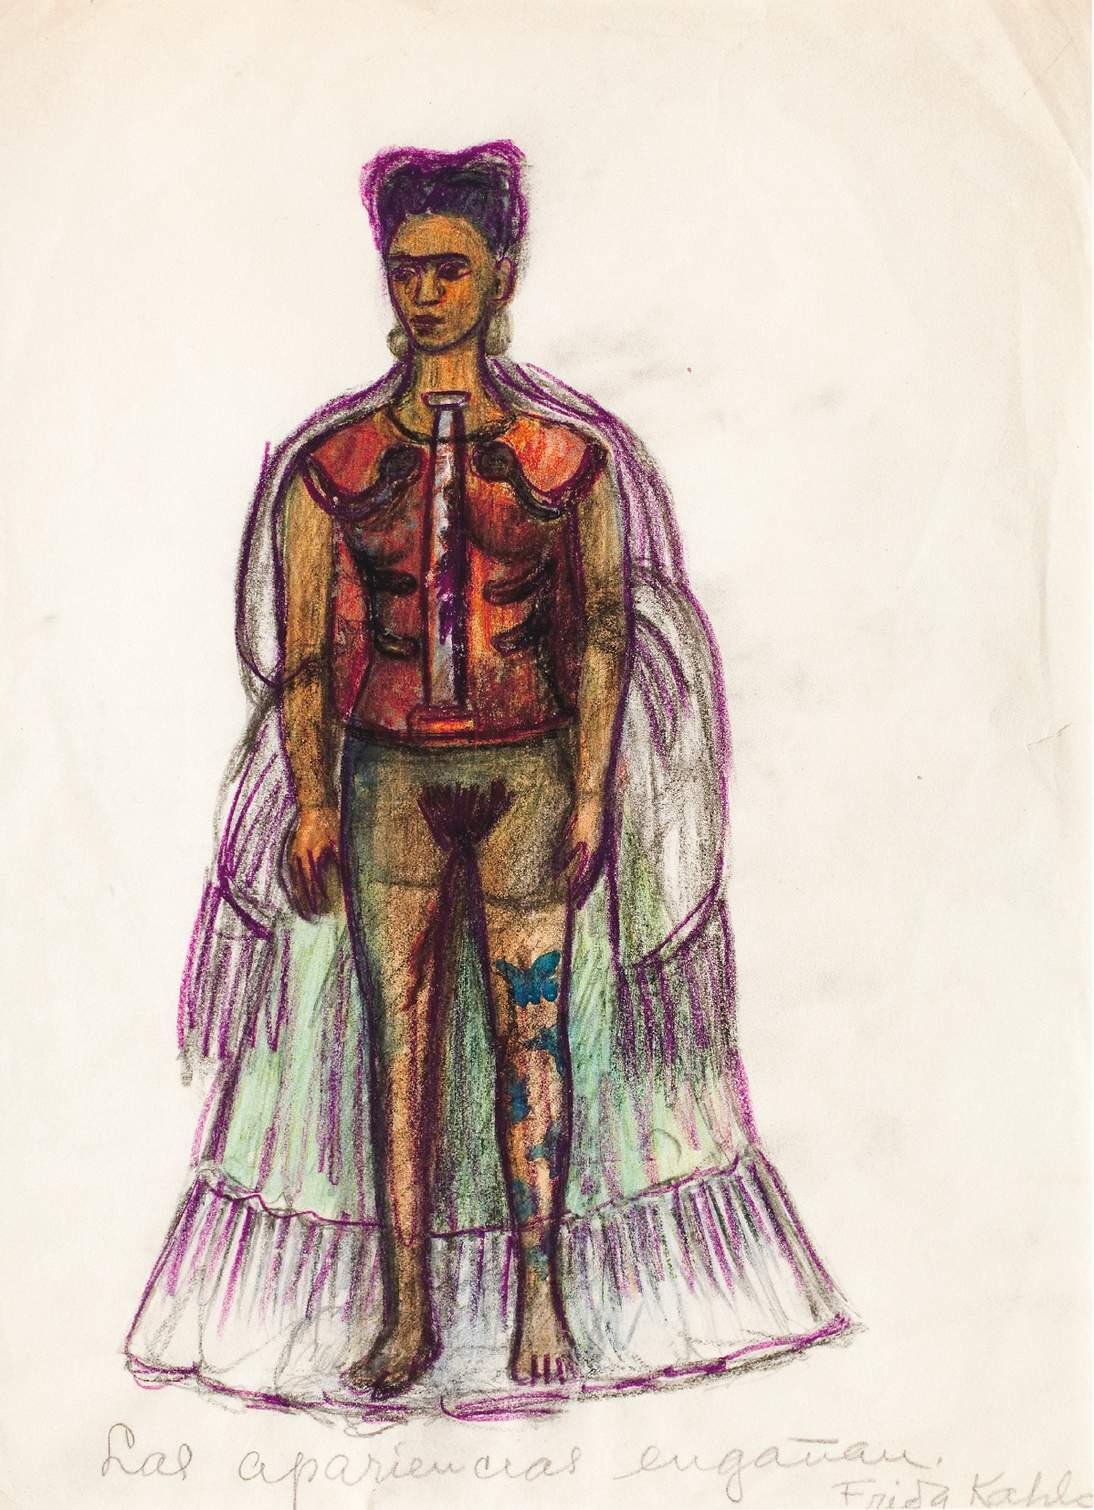 "Frida Kahlo, ""Appearances Can Be Deceiving,"" no date. Charcoal and pencil on paper, 11 ⅜ x 8 ¼ in. (29 x 21 cm). Museo Frida Kahlo © 2020 Banco de México Diego Rivera & Frida Kahlo Museums Trust. Av. 5 de Mayo No. 2, Col. Centro, alc. Cuauhtémoc, C.P. 06000, Mexico City / Artists Rights Society (ARS), New York"